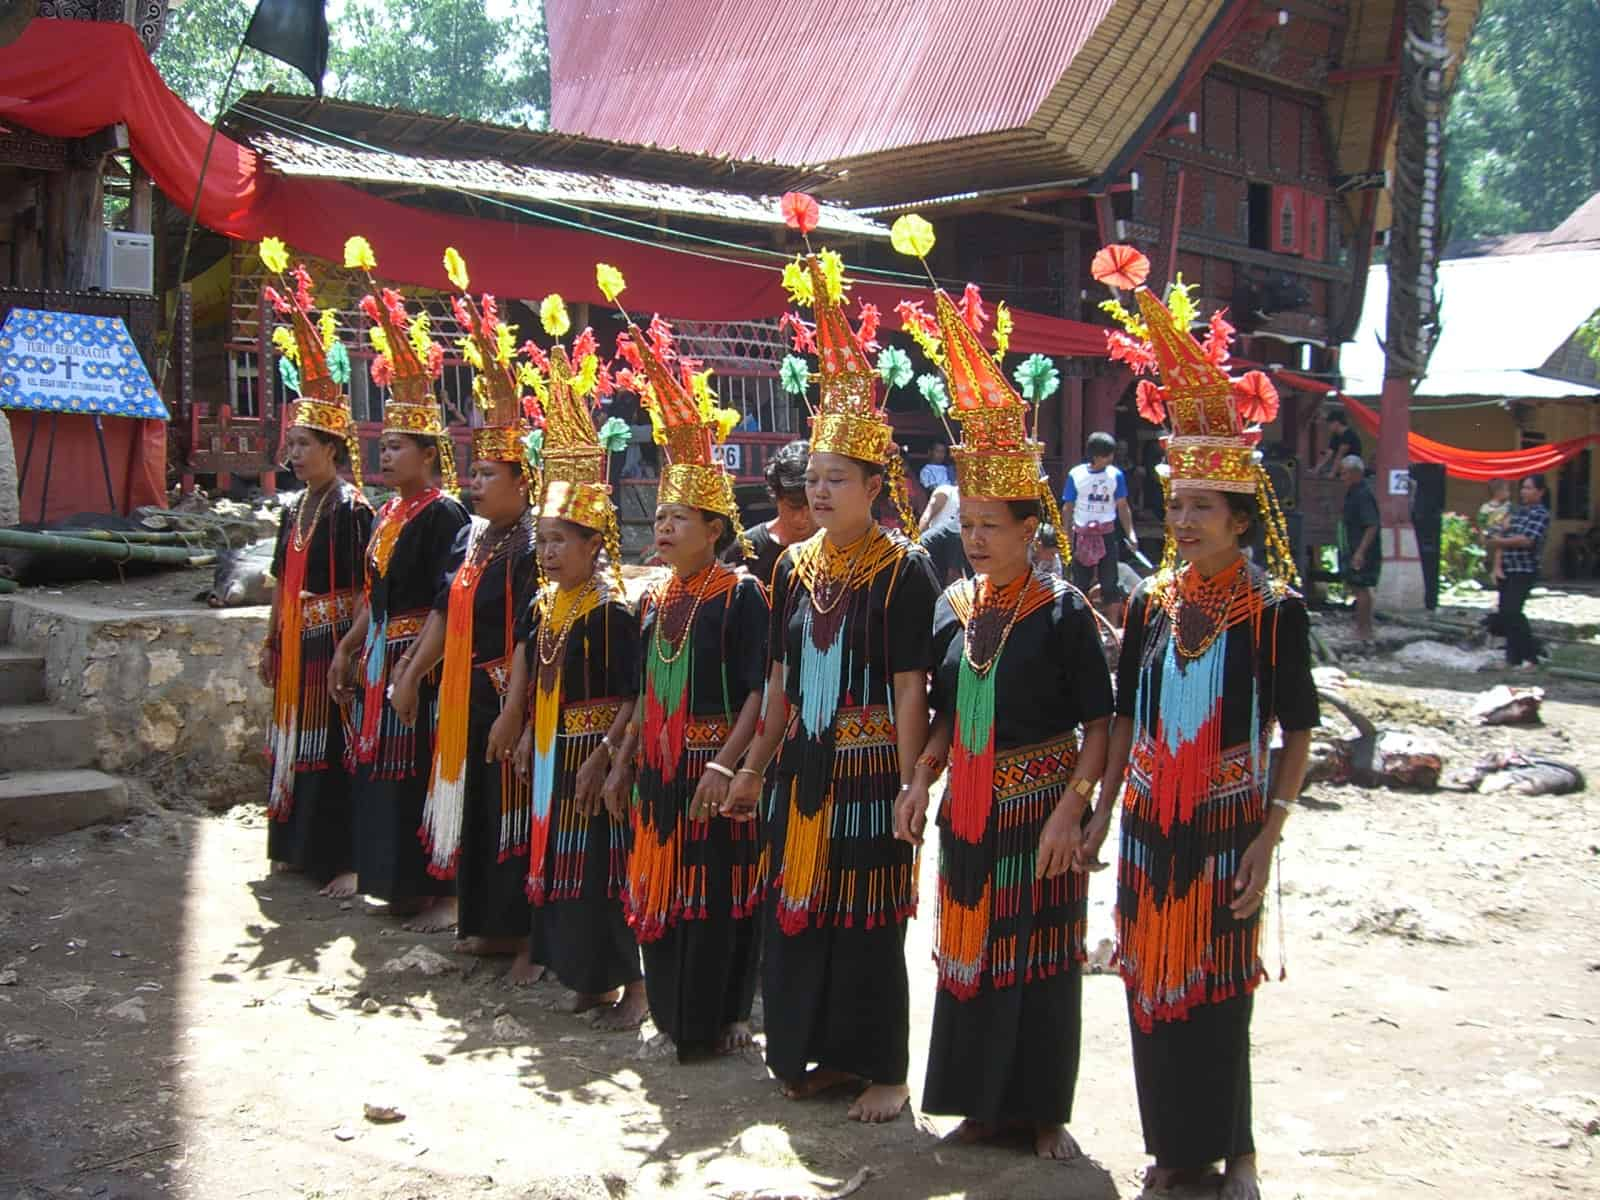 Funeral Chants - Best Things to Do in Indonesia